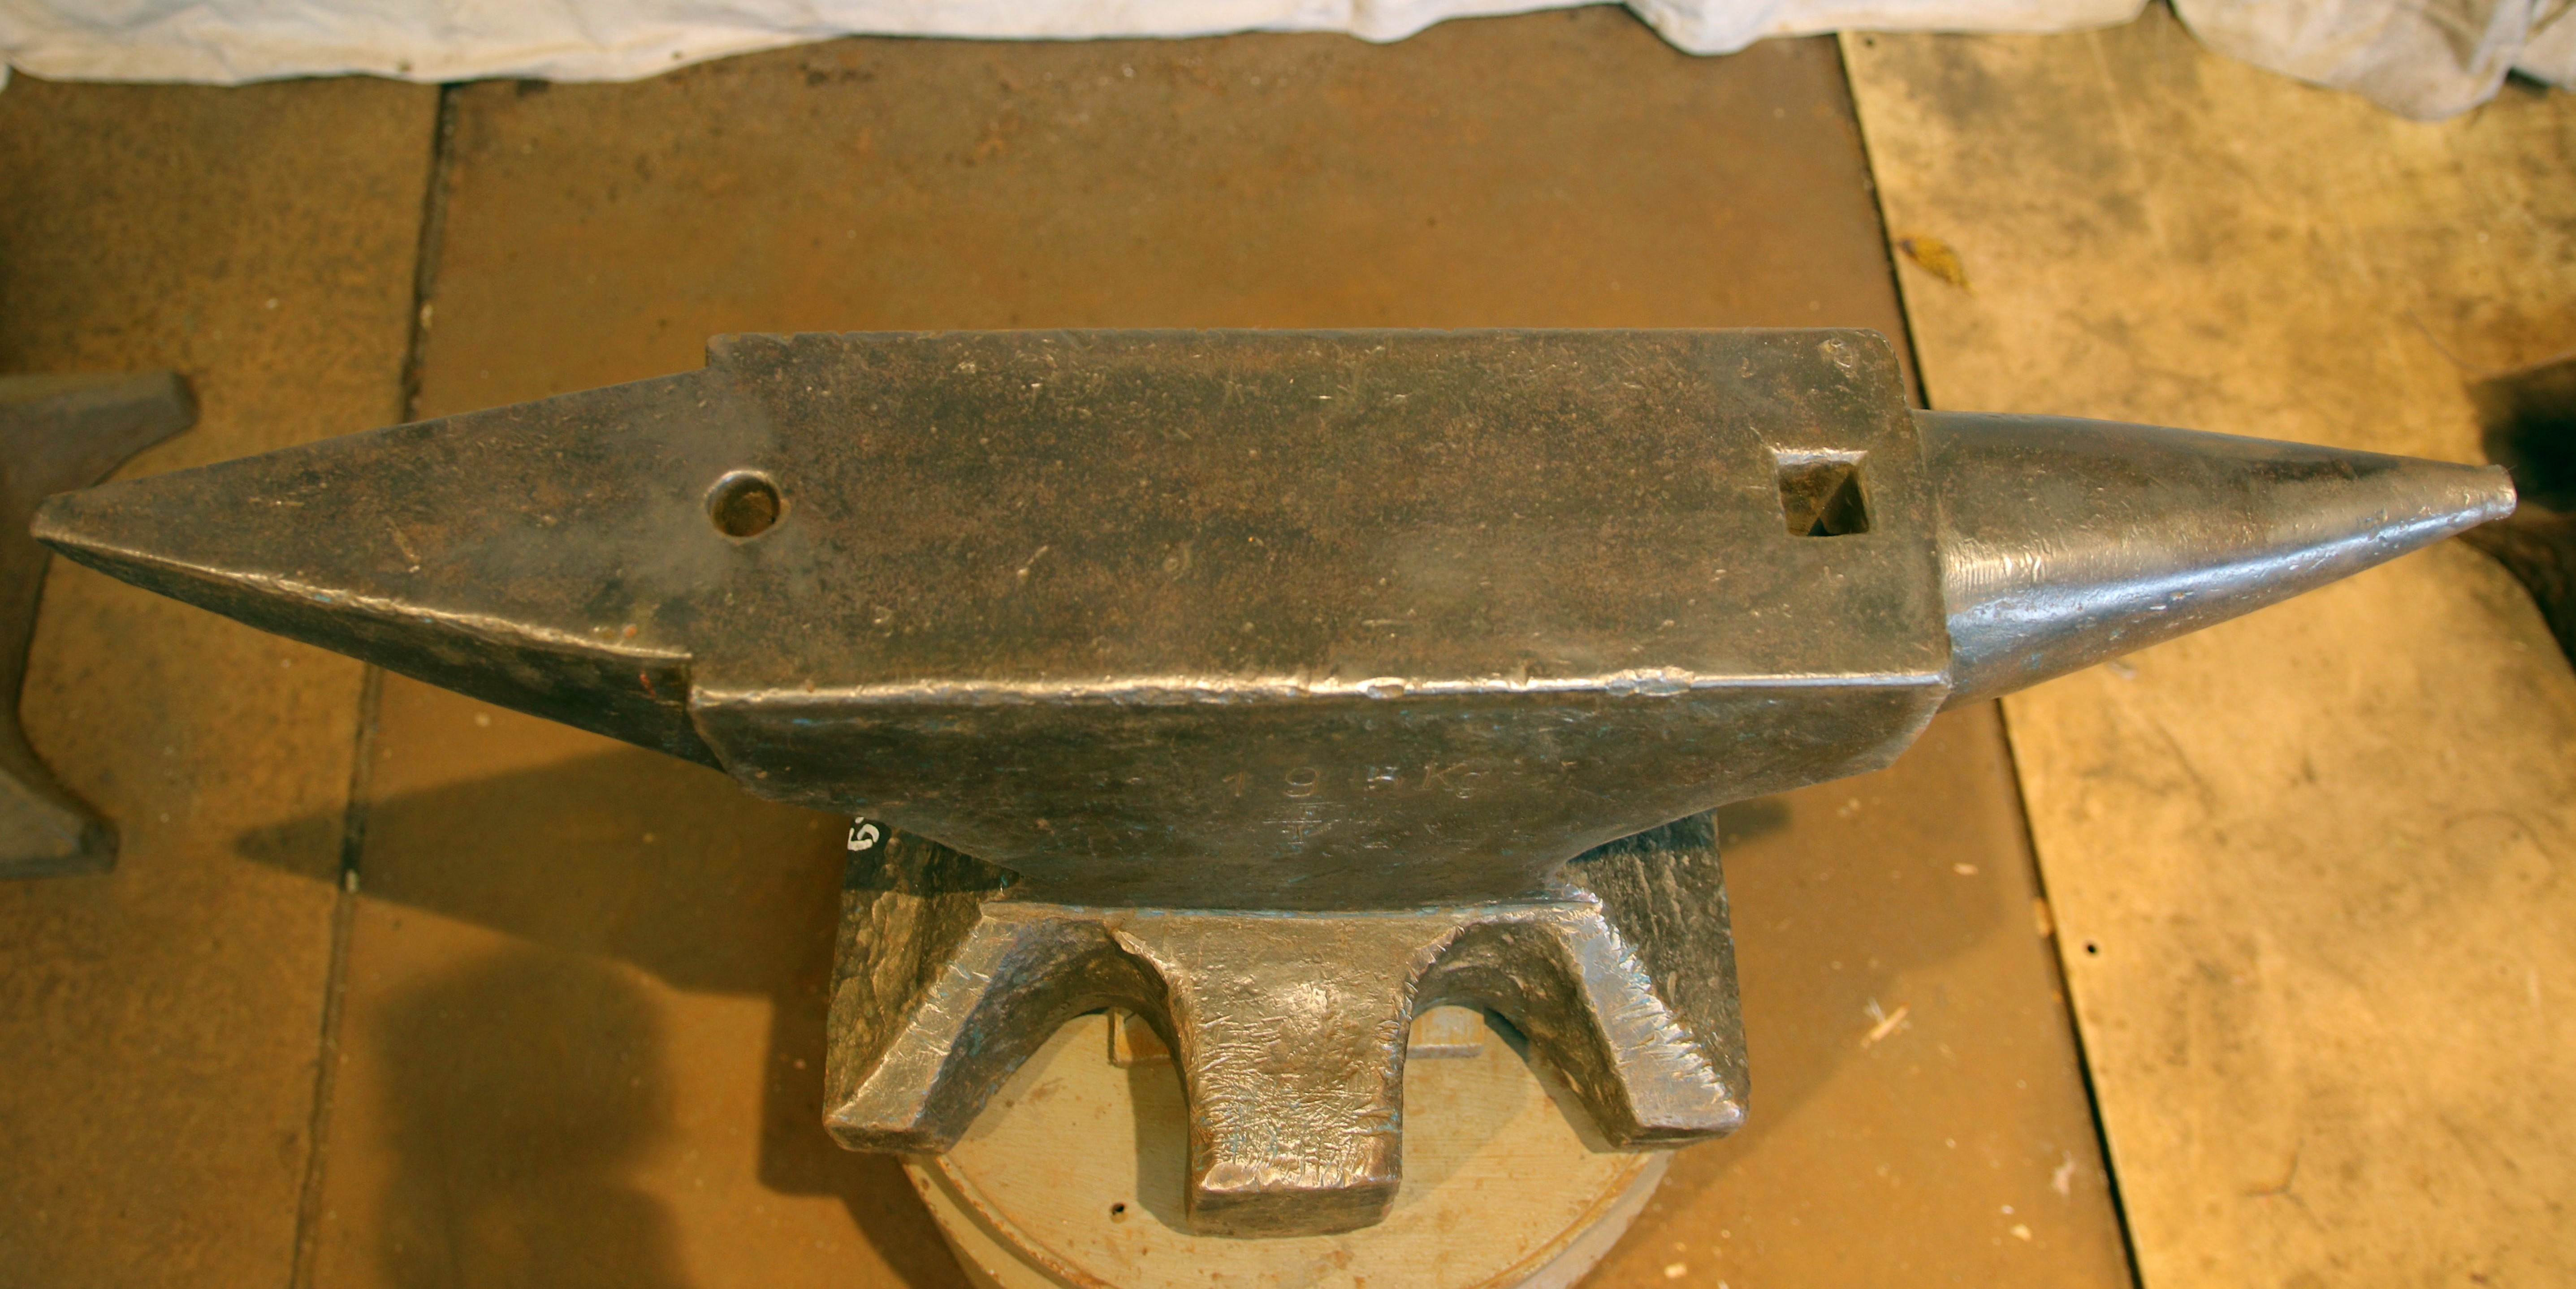 429 lb German anvil for sale- hand forged Peddinghaus north German style Double Horn blacksmith anvil